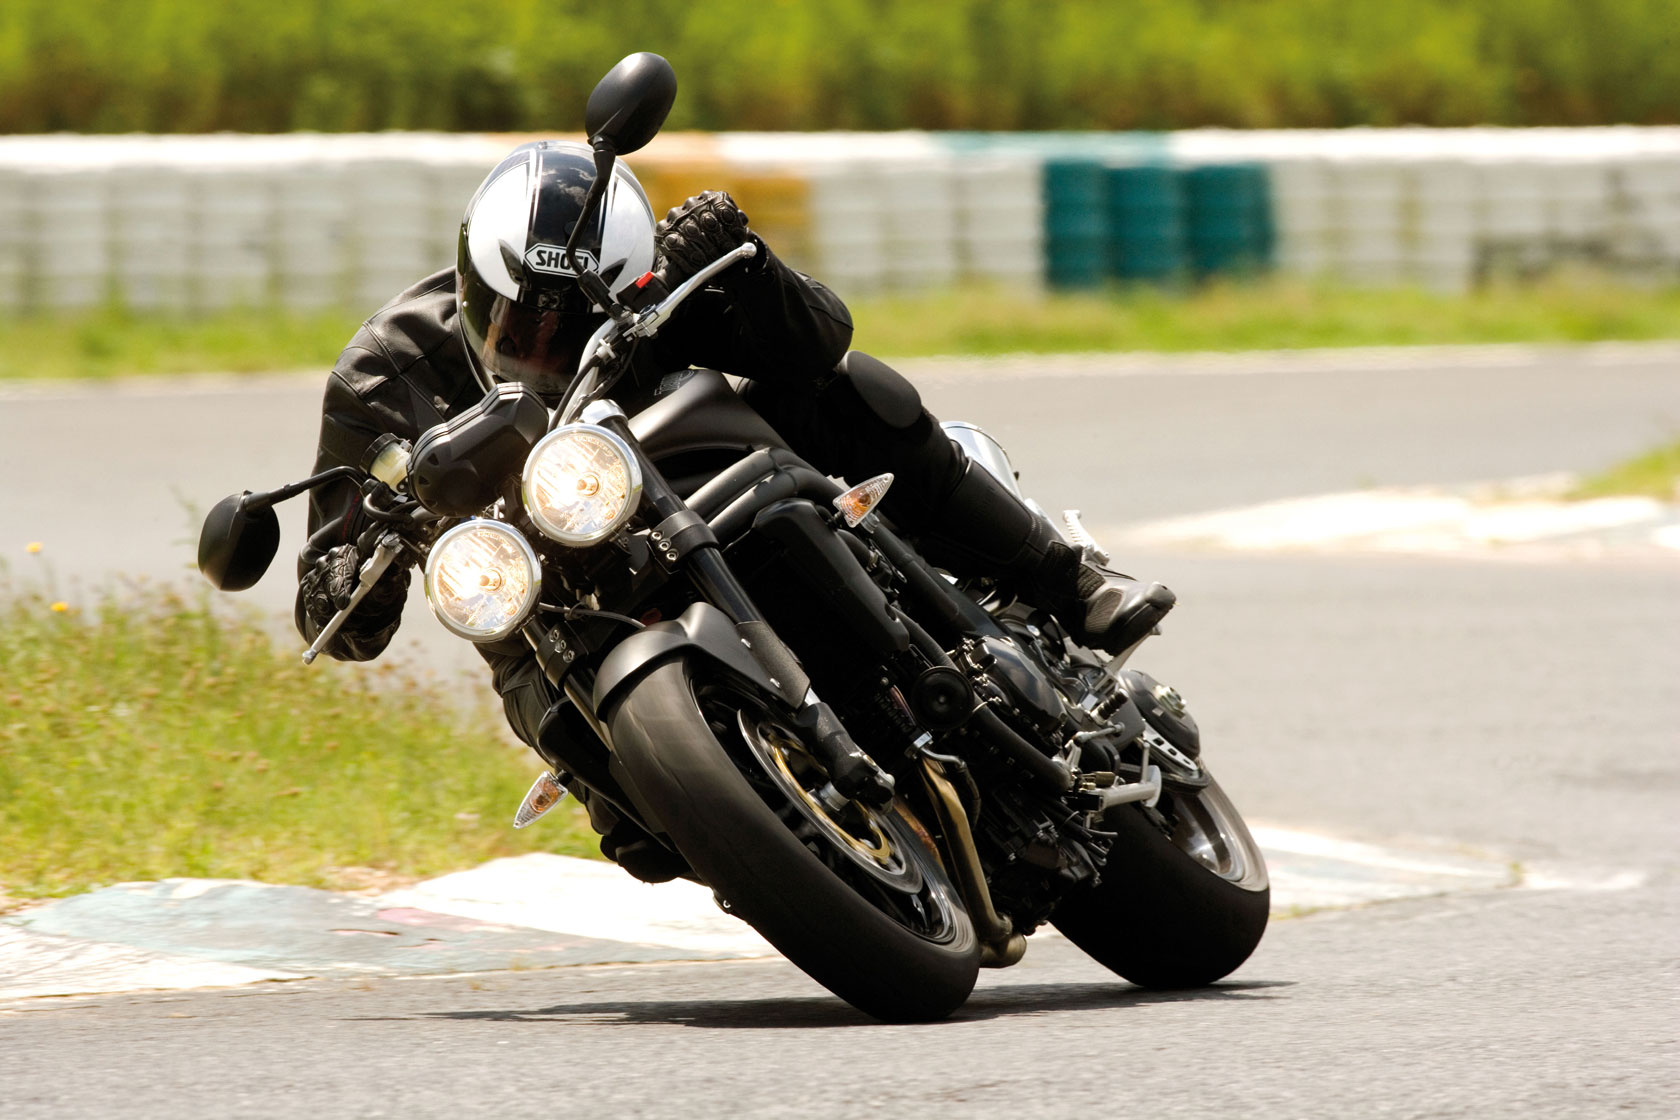 2009 triumph speed triple j wallpaper | 1680x1120 | 111047 | wallpaperup